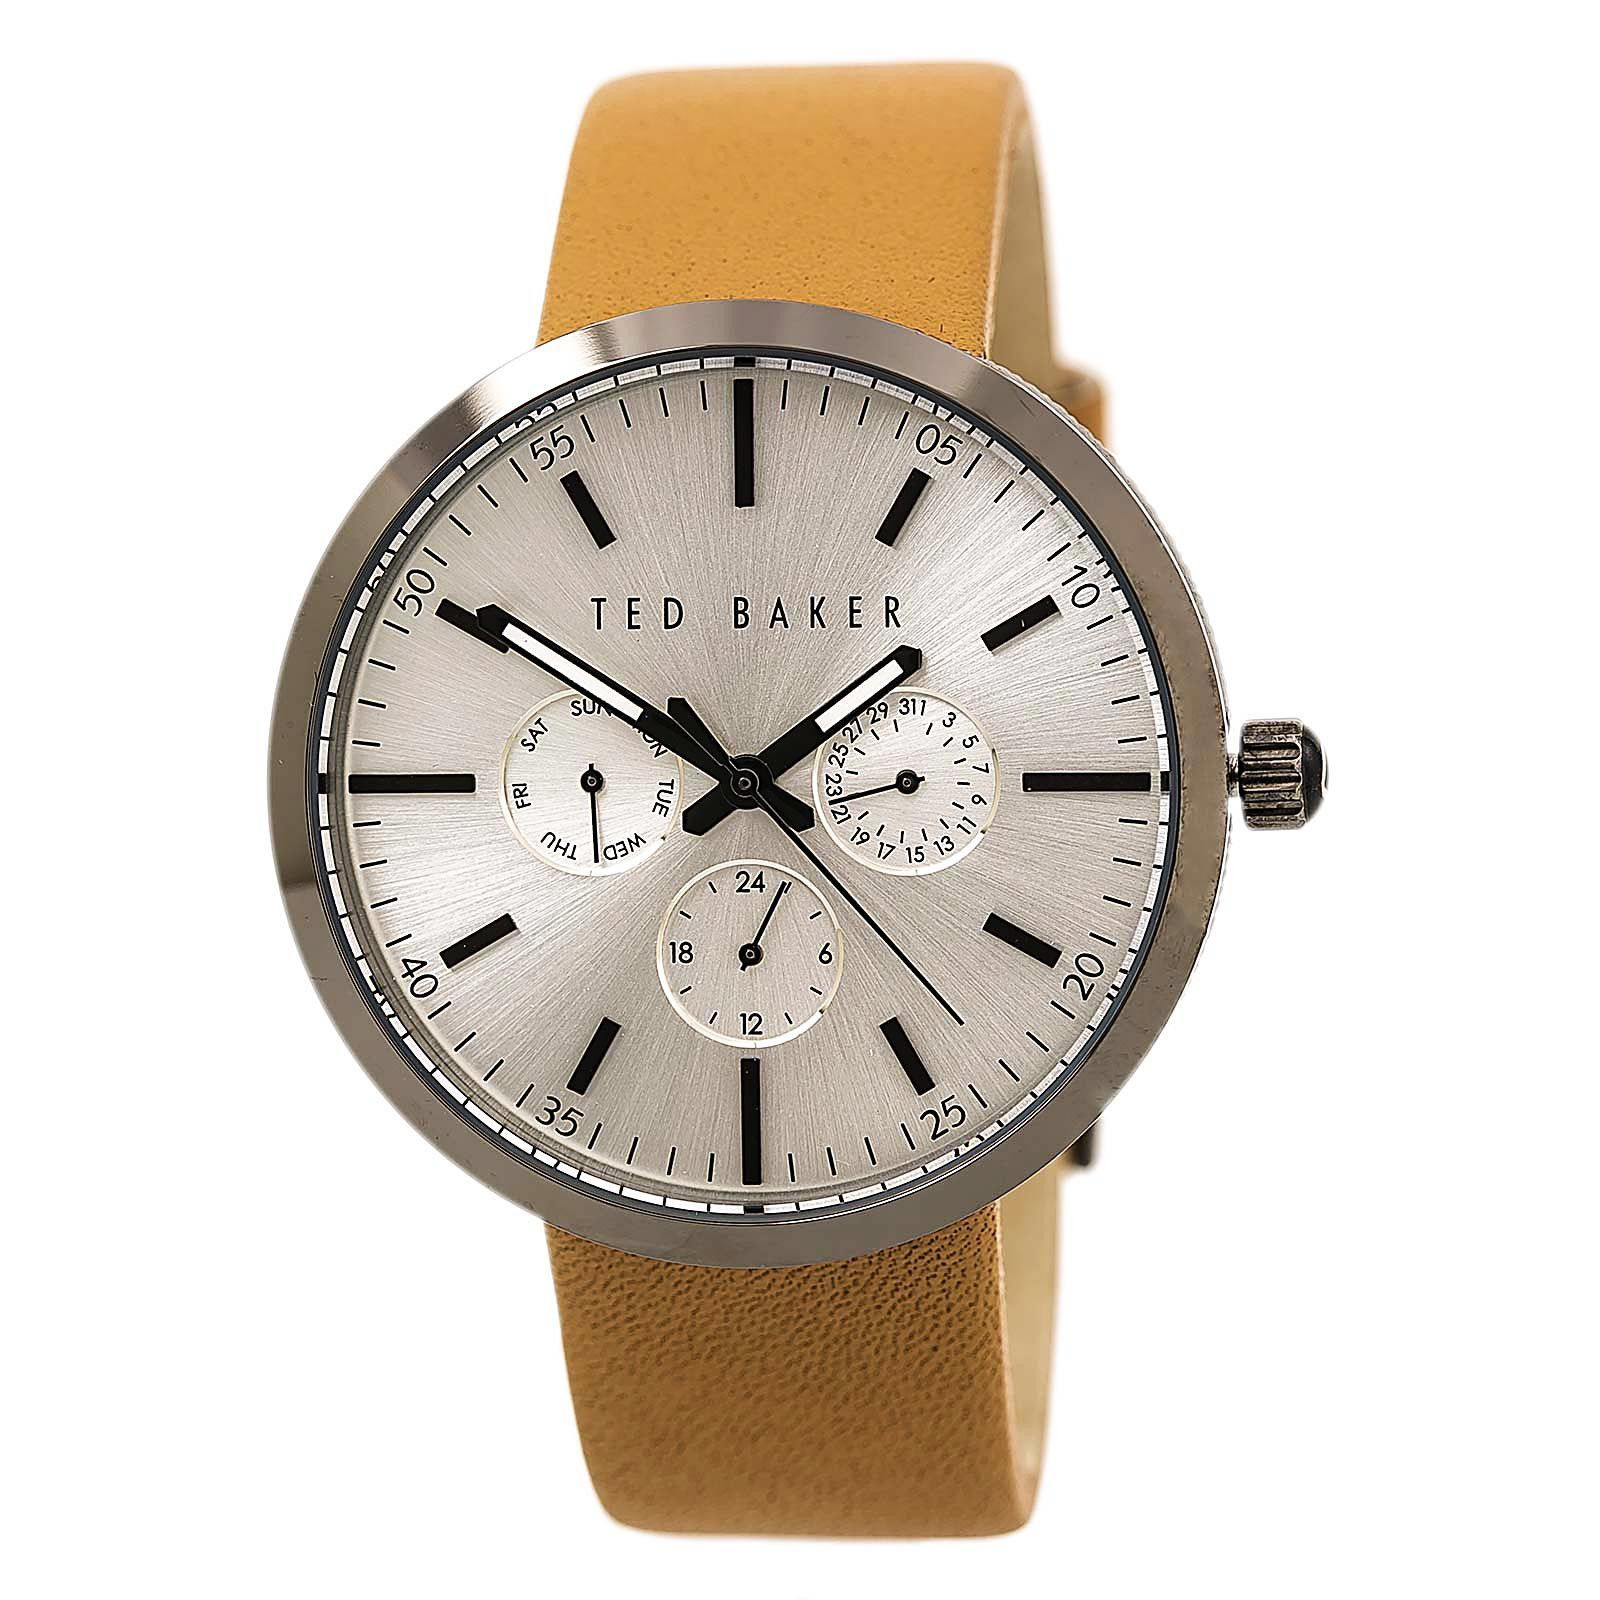 Ted Baker 10026558 Men's Smart Casual Silver Dial Brown Leather Strap Watch